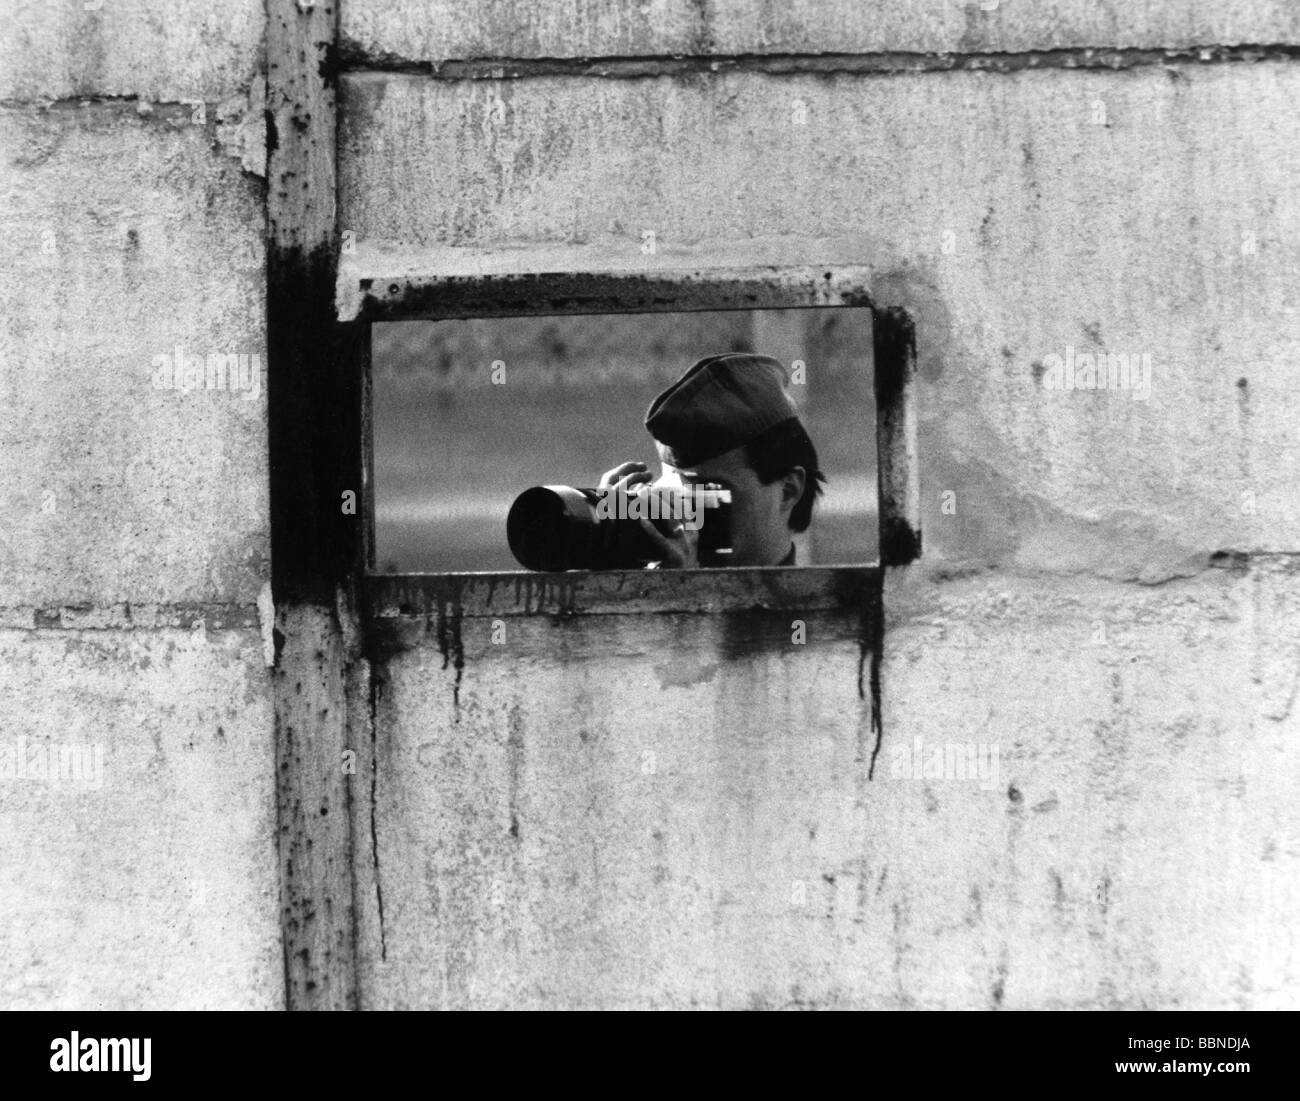 geography / travel, Germany, GDR, border, soldier taking photos through a hole in the Berlin Wall, 1980s, Additional - Stock Image